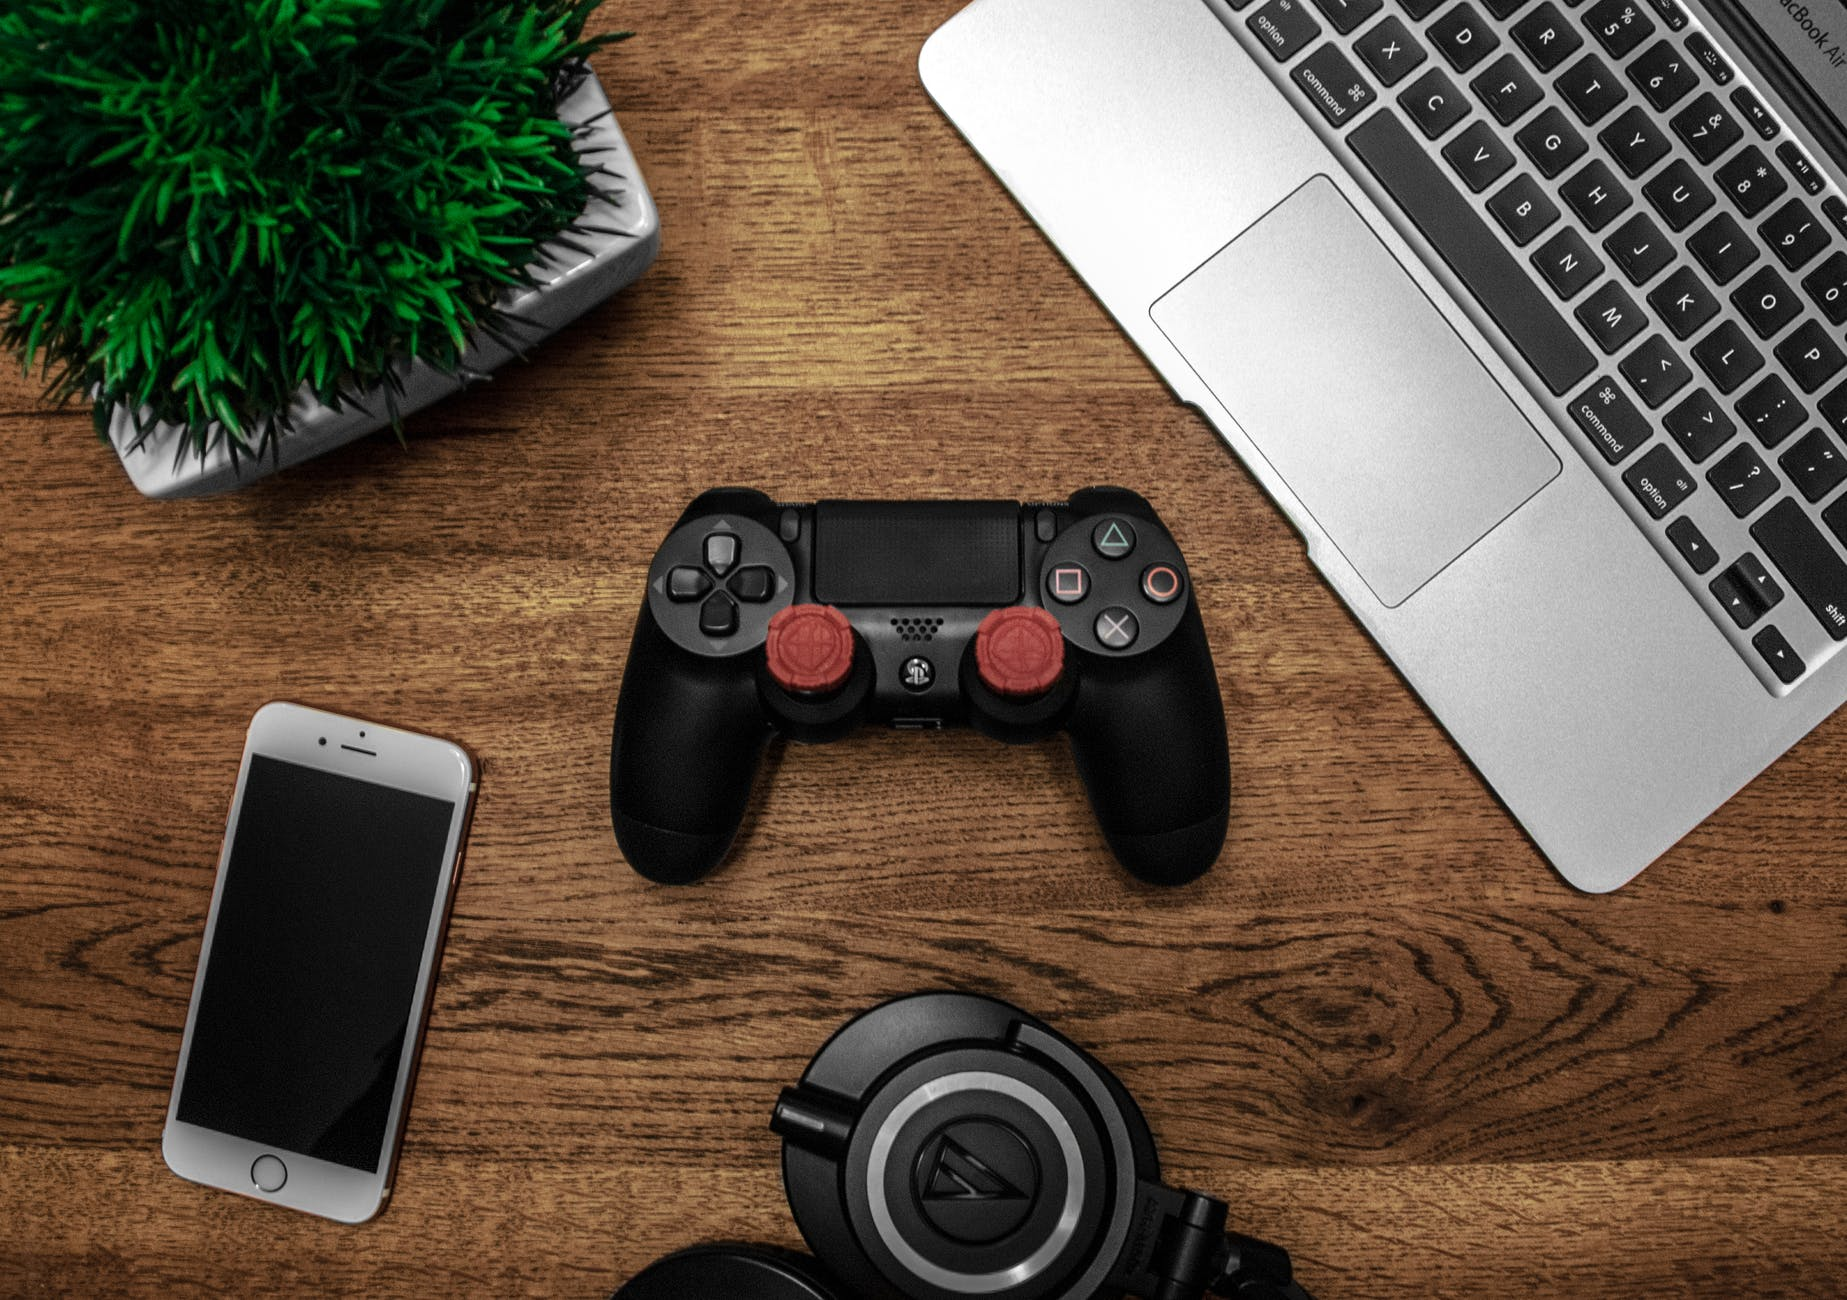 silver macbook beside black sony ps4 dualshock 4 silver iphone 6 and round black keychain on brown wooden table - Reach Out